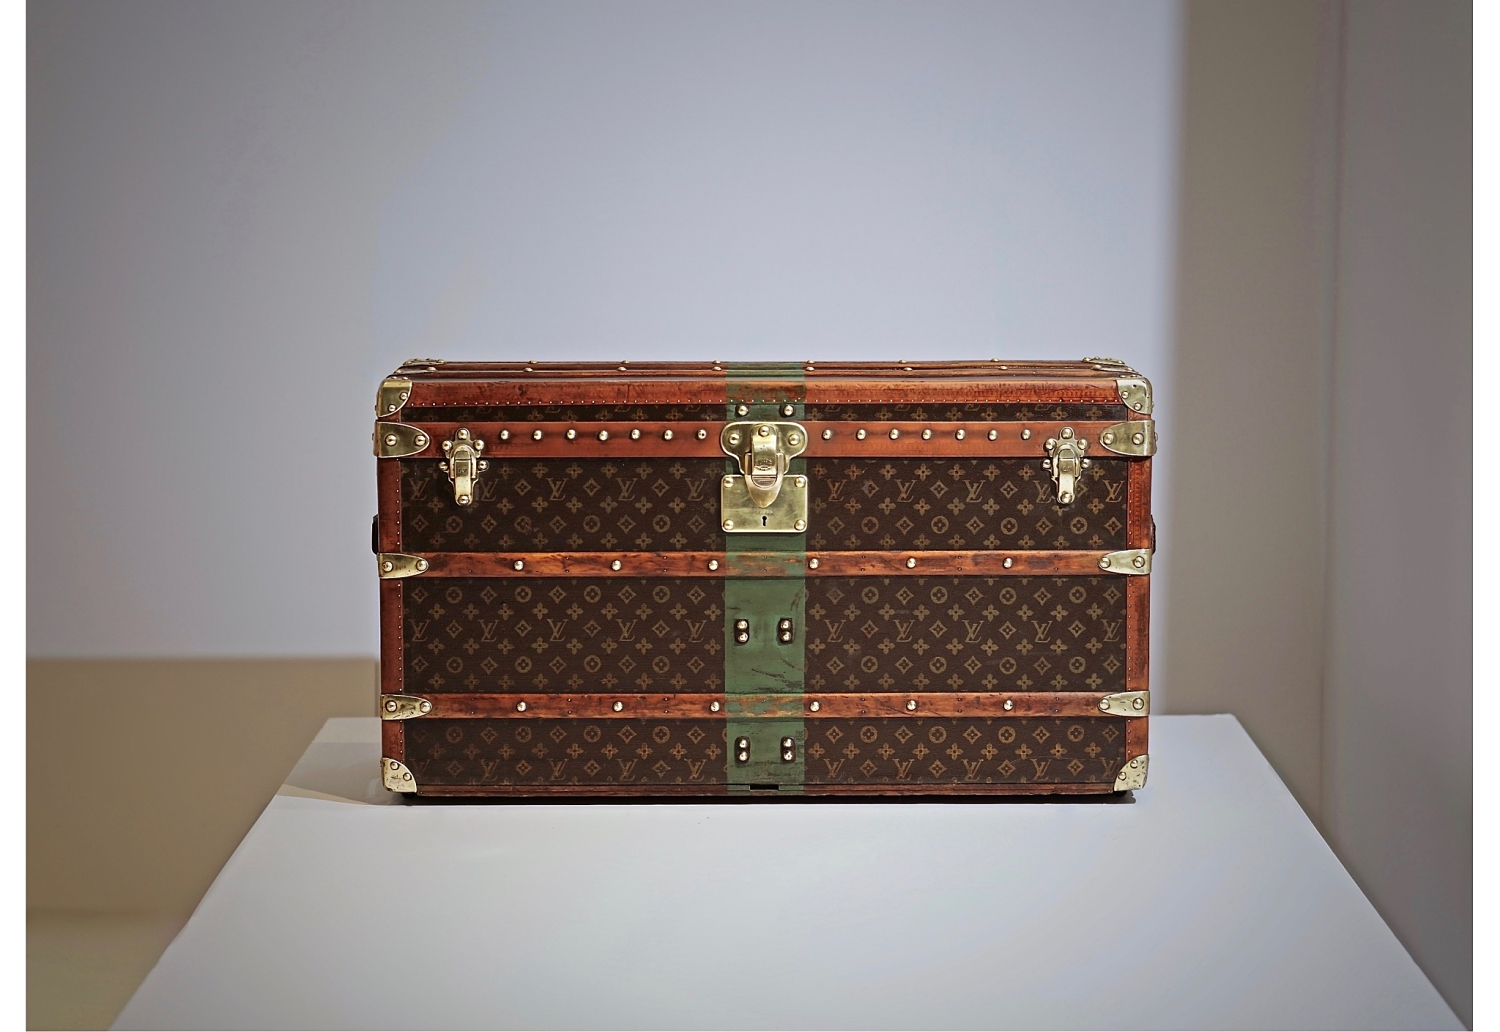 the-well-traveled-trunk-louis-vuitton-homepage-about